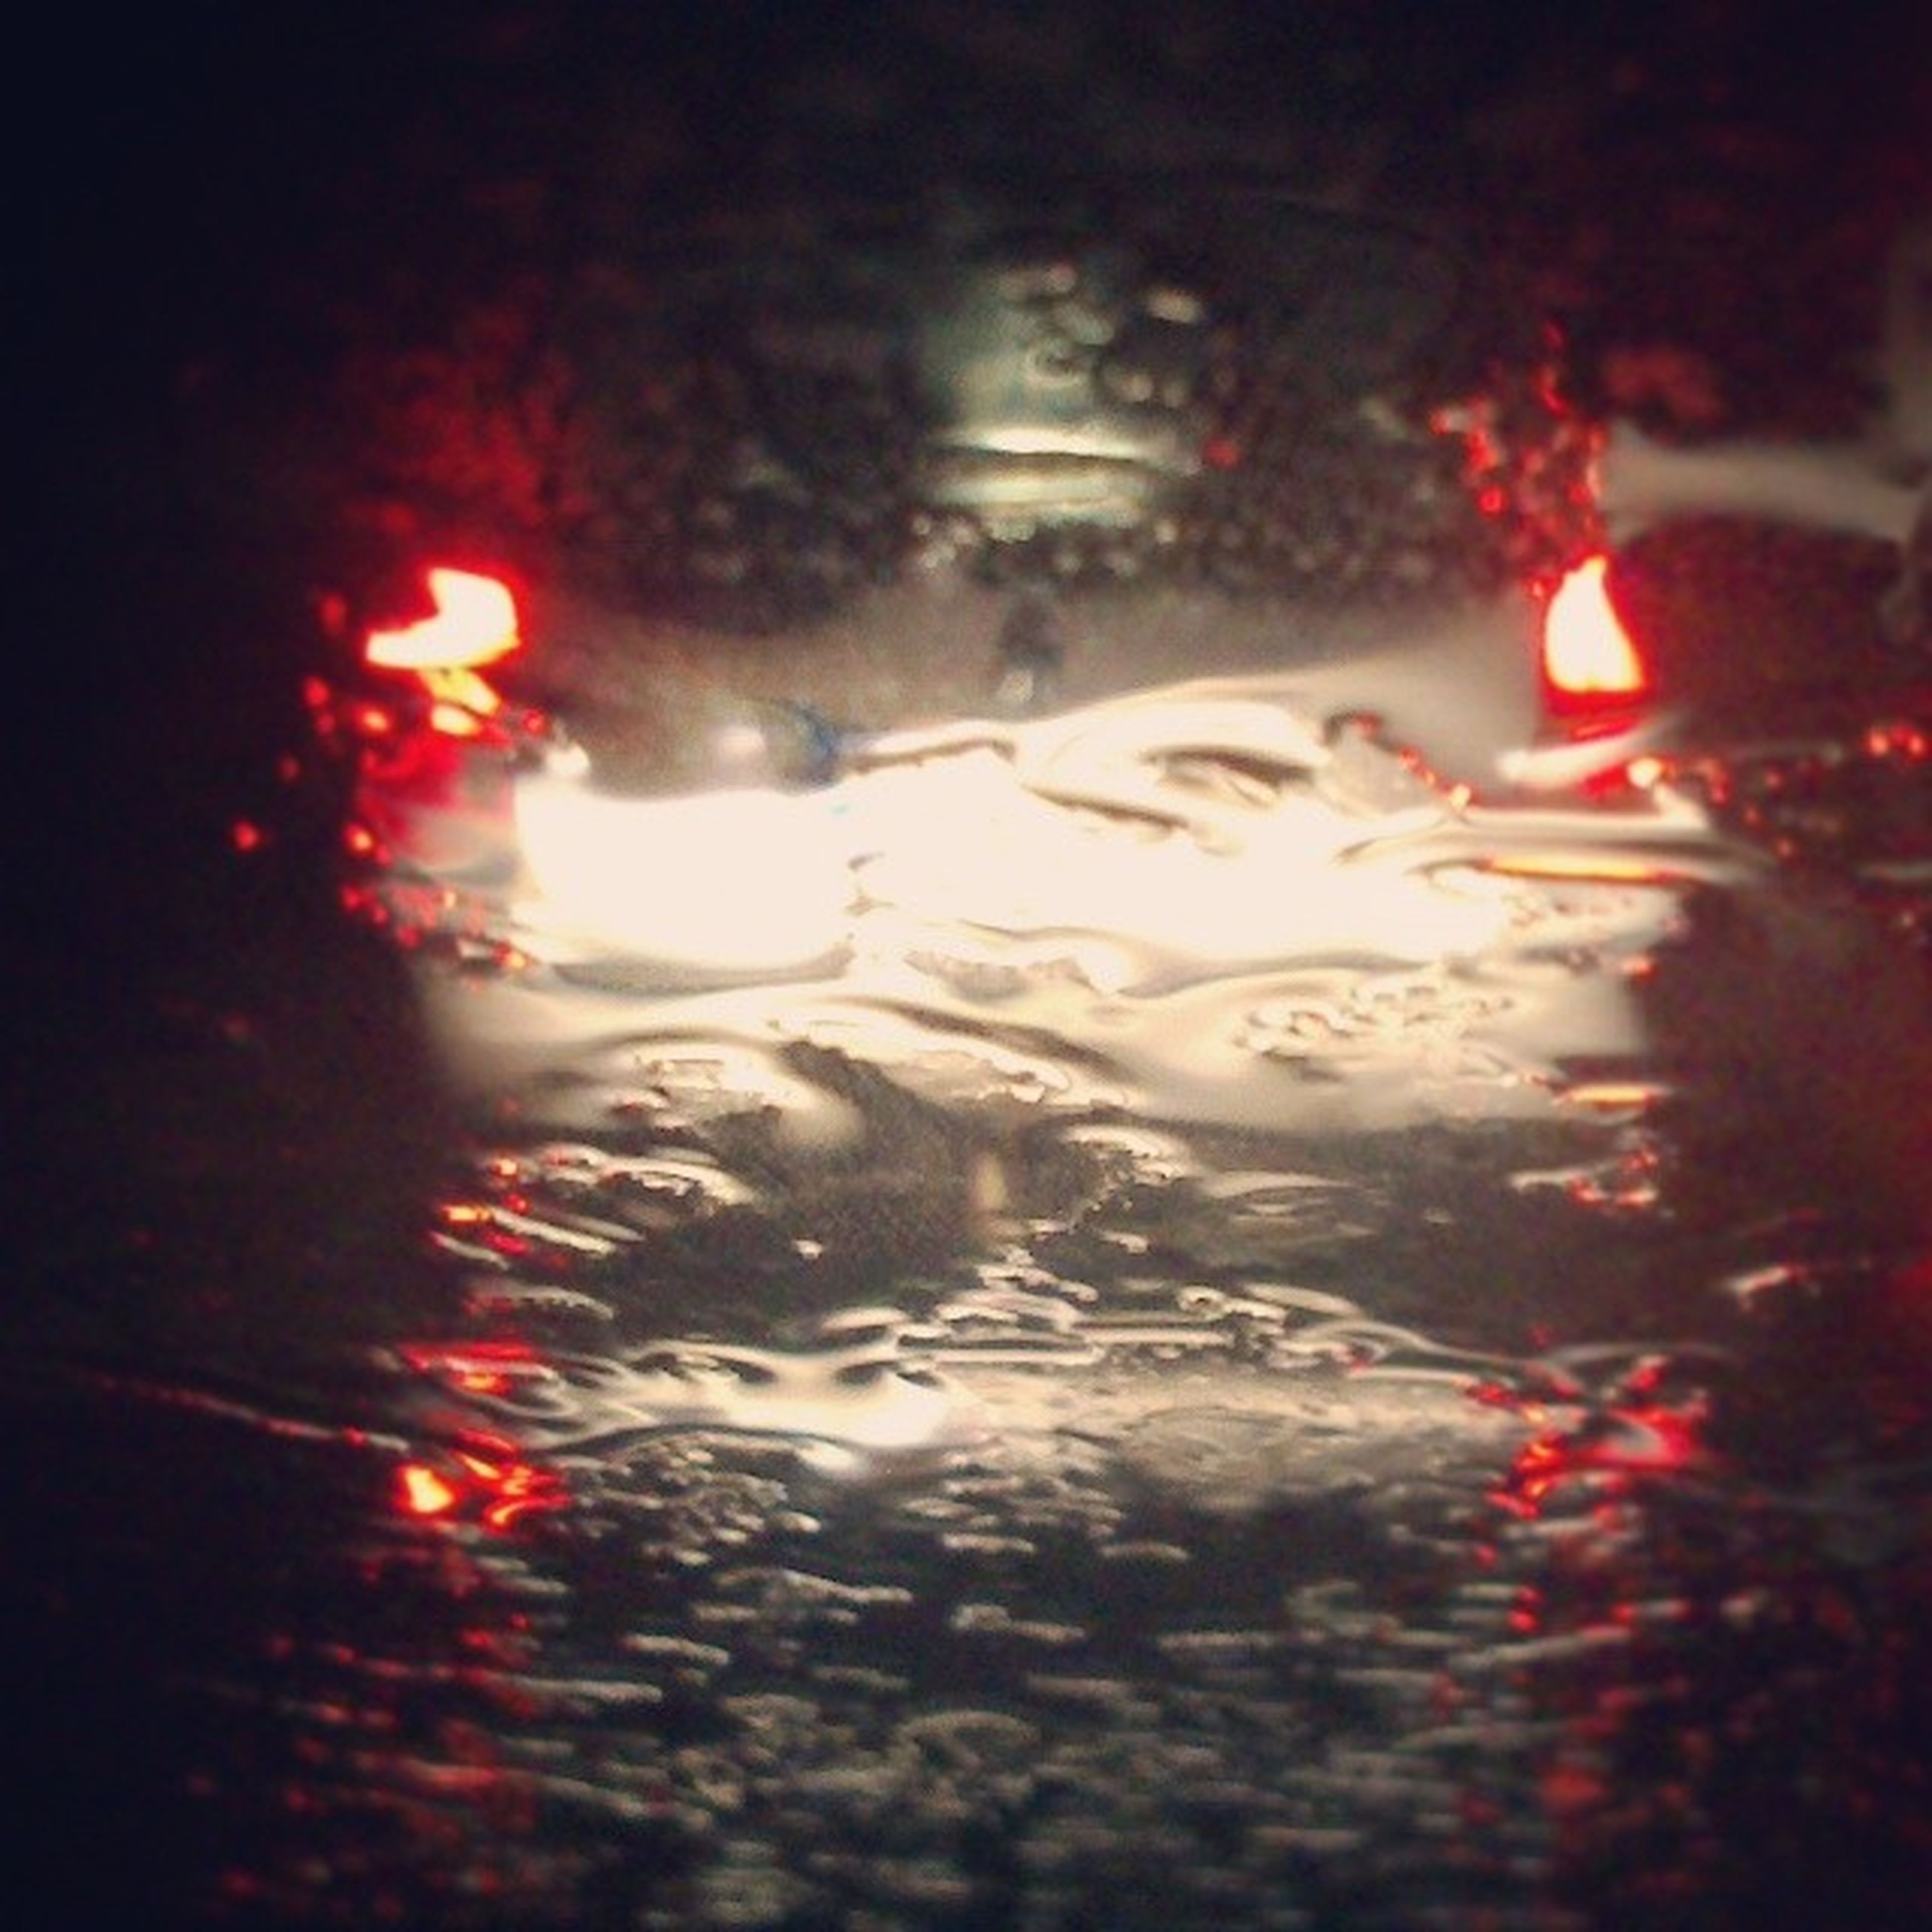 wet, rain, illuminated, night, street, water, reflection, puddle, season, weather, red, drop, transparent, glass - material, road, monsoon, indoors, window, car